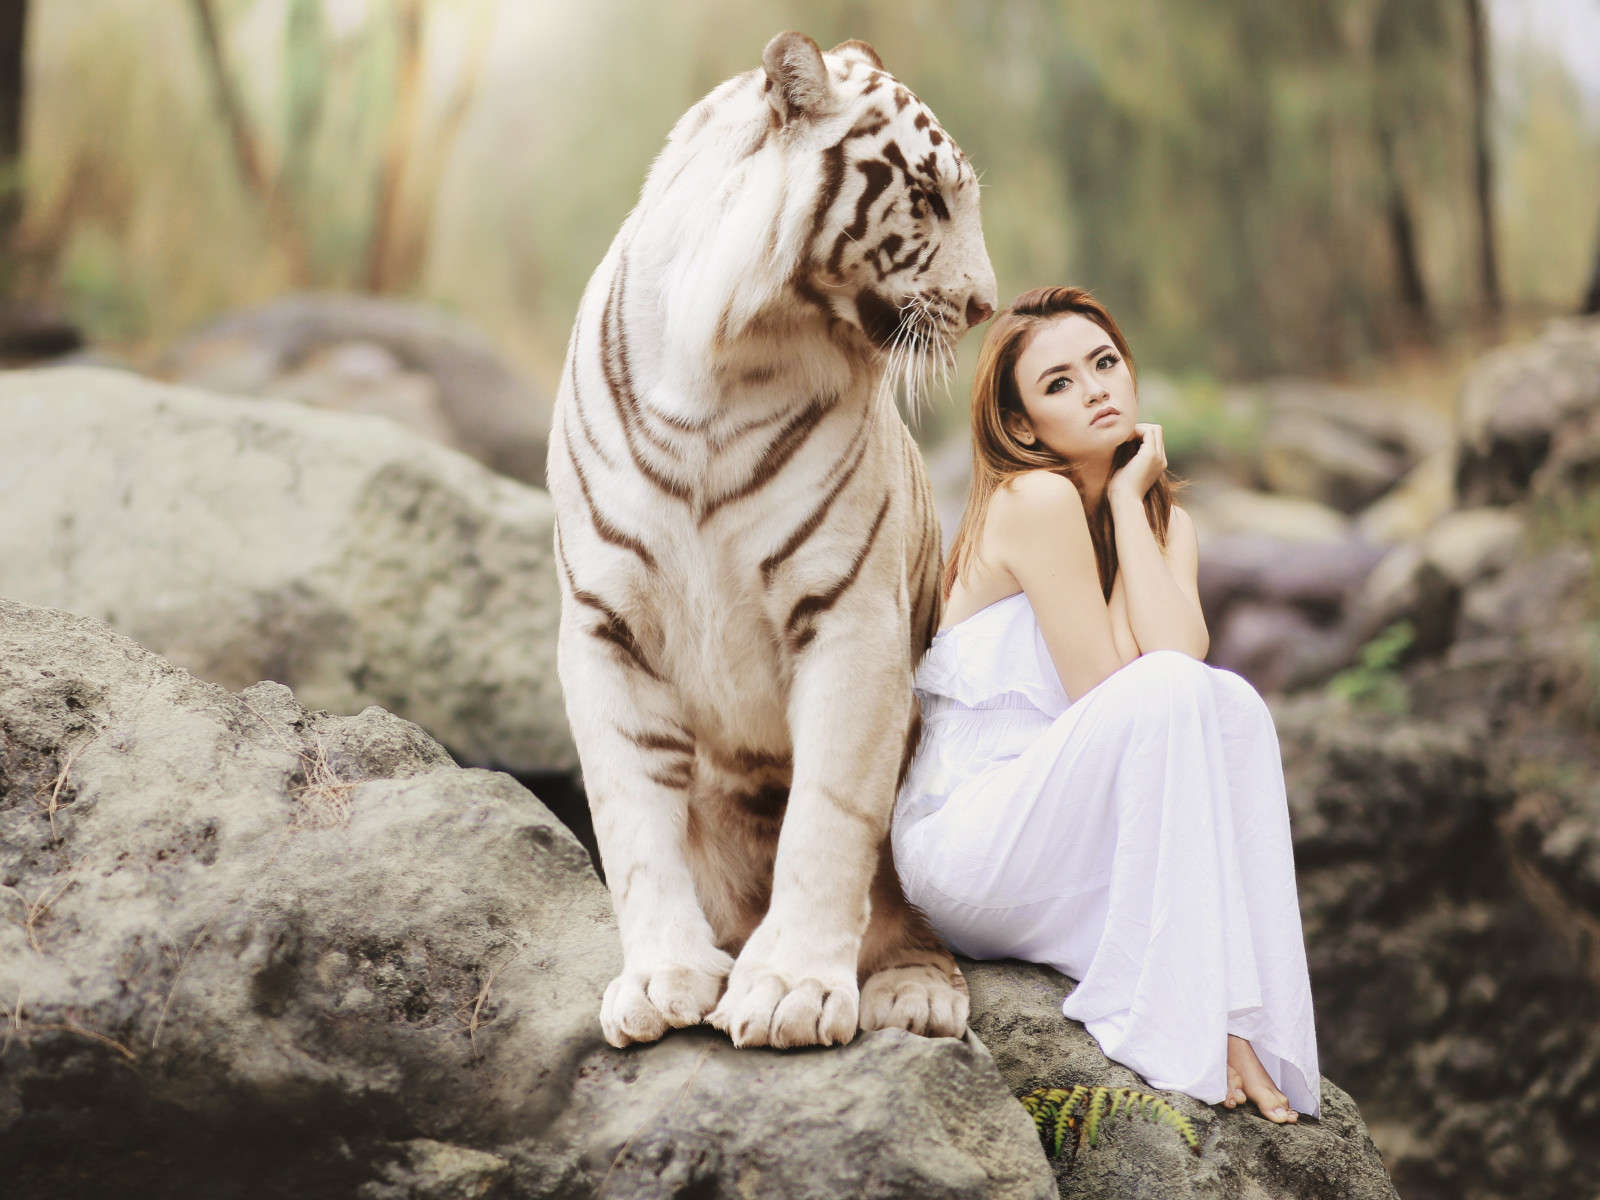 Bengal tiger and a beautiful girl wallpaper 1600x1200